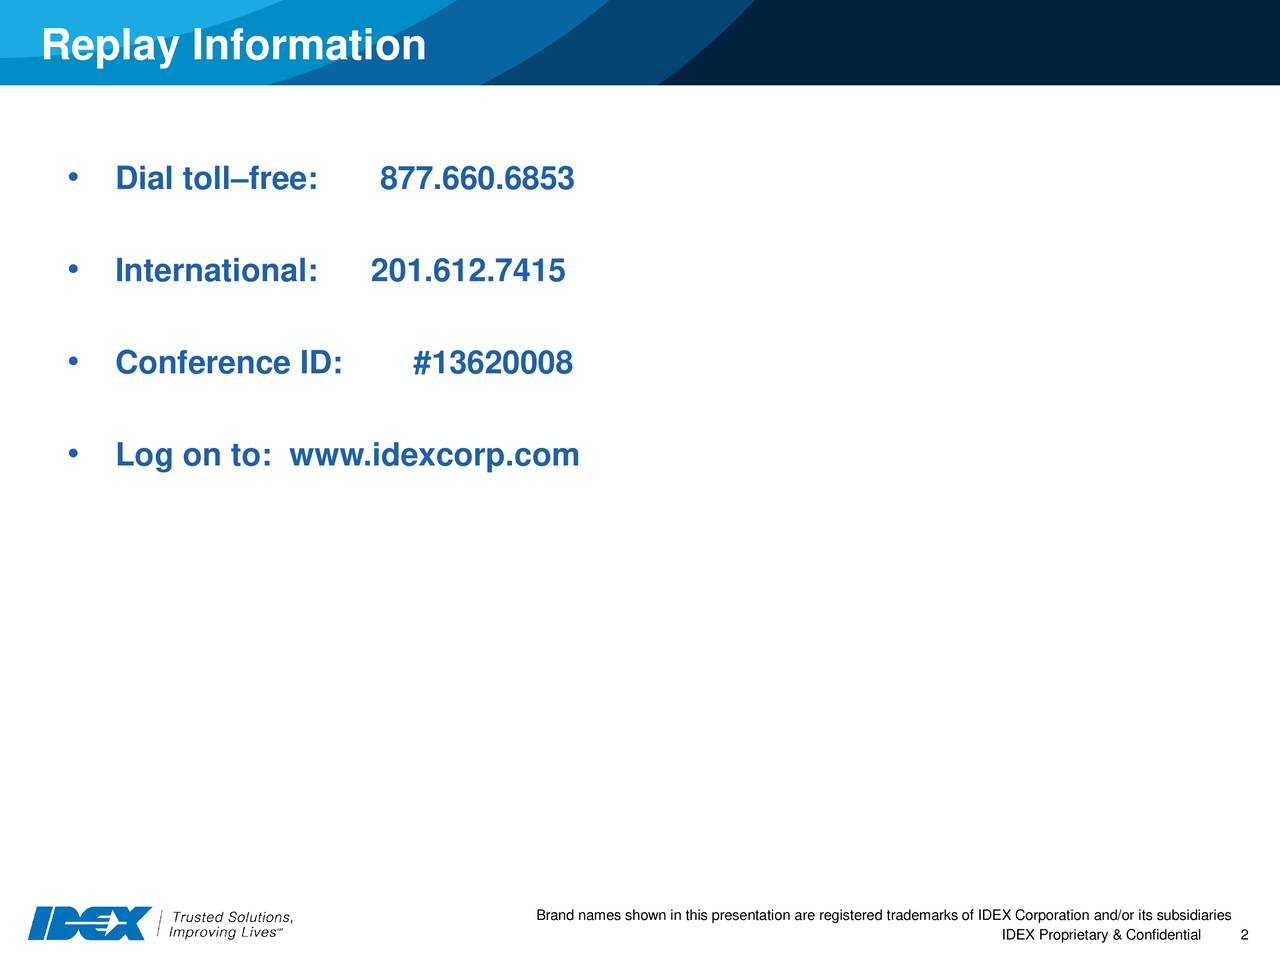 Dial tollfree: 877.660.6853 International: 201.612.7415 Conference ID: #13620008 Log on to: www.idexcorp.com Brand names shown in this presentatiIDEX Proprietary &2Confidential IDEX Corporation and/or its subsidiaries